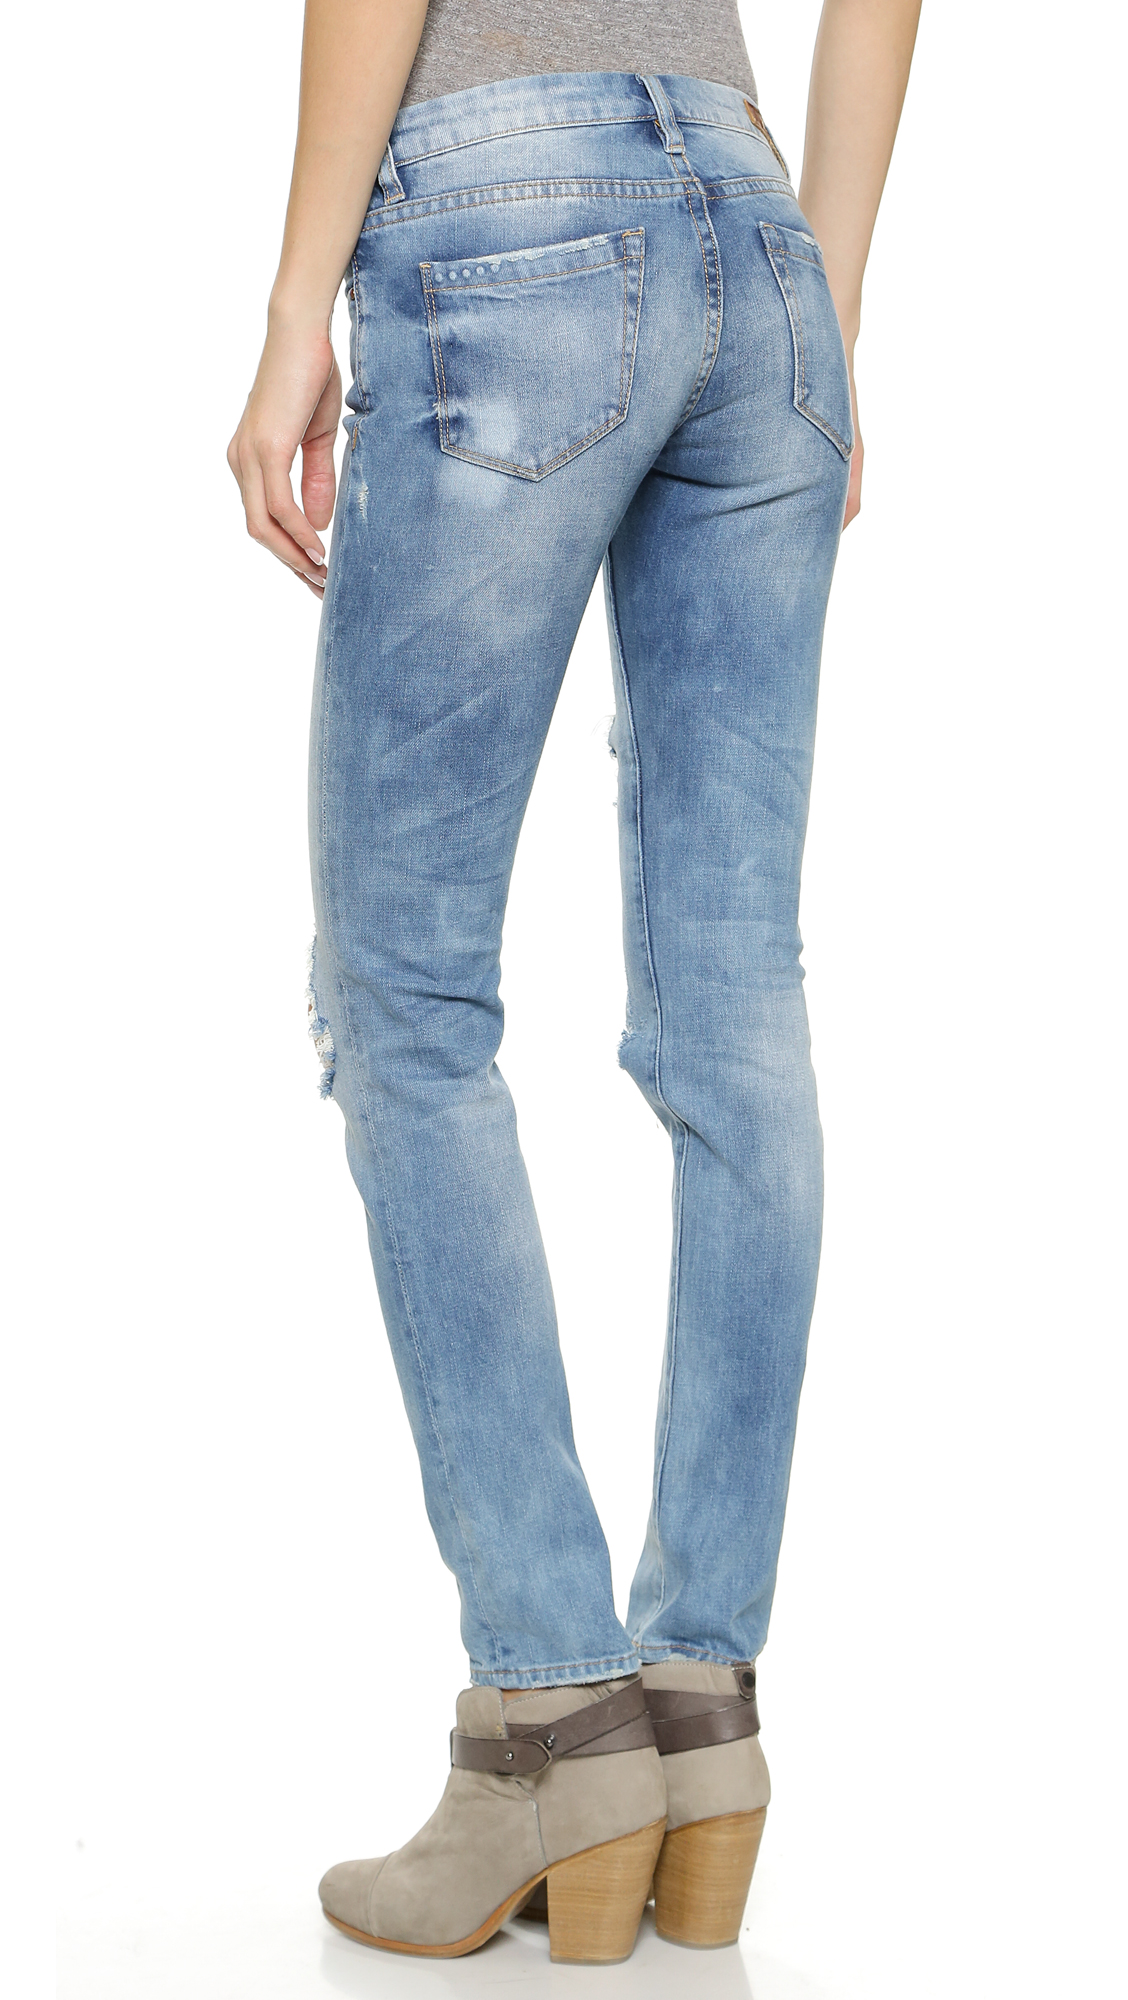 Blank Denim Distressed Skinny Jeans | 15% off first app purchase ...